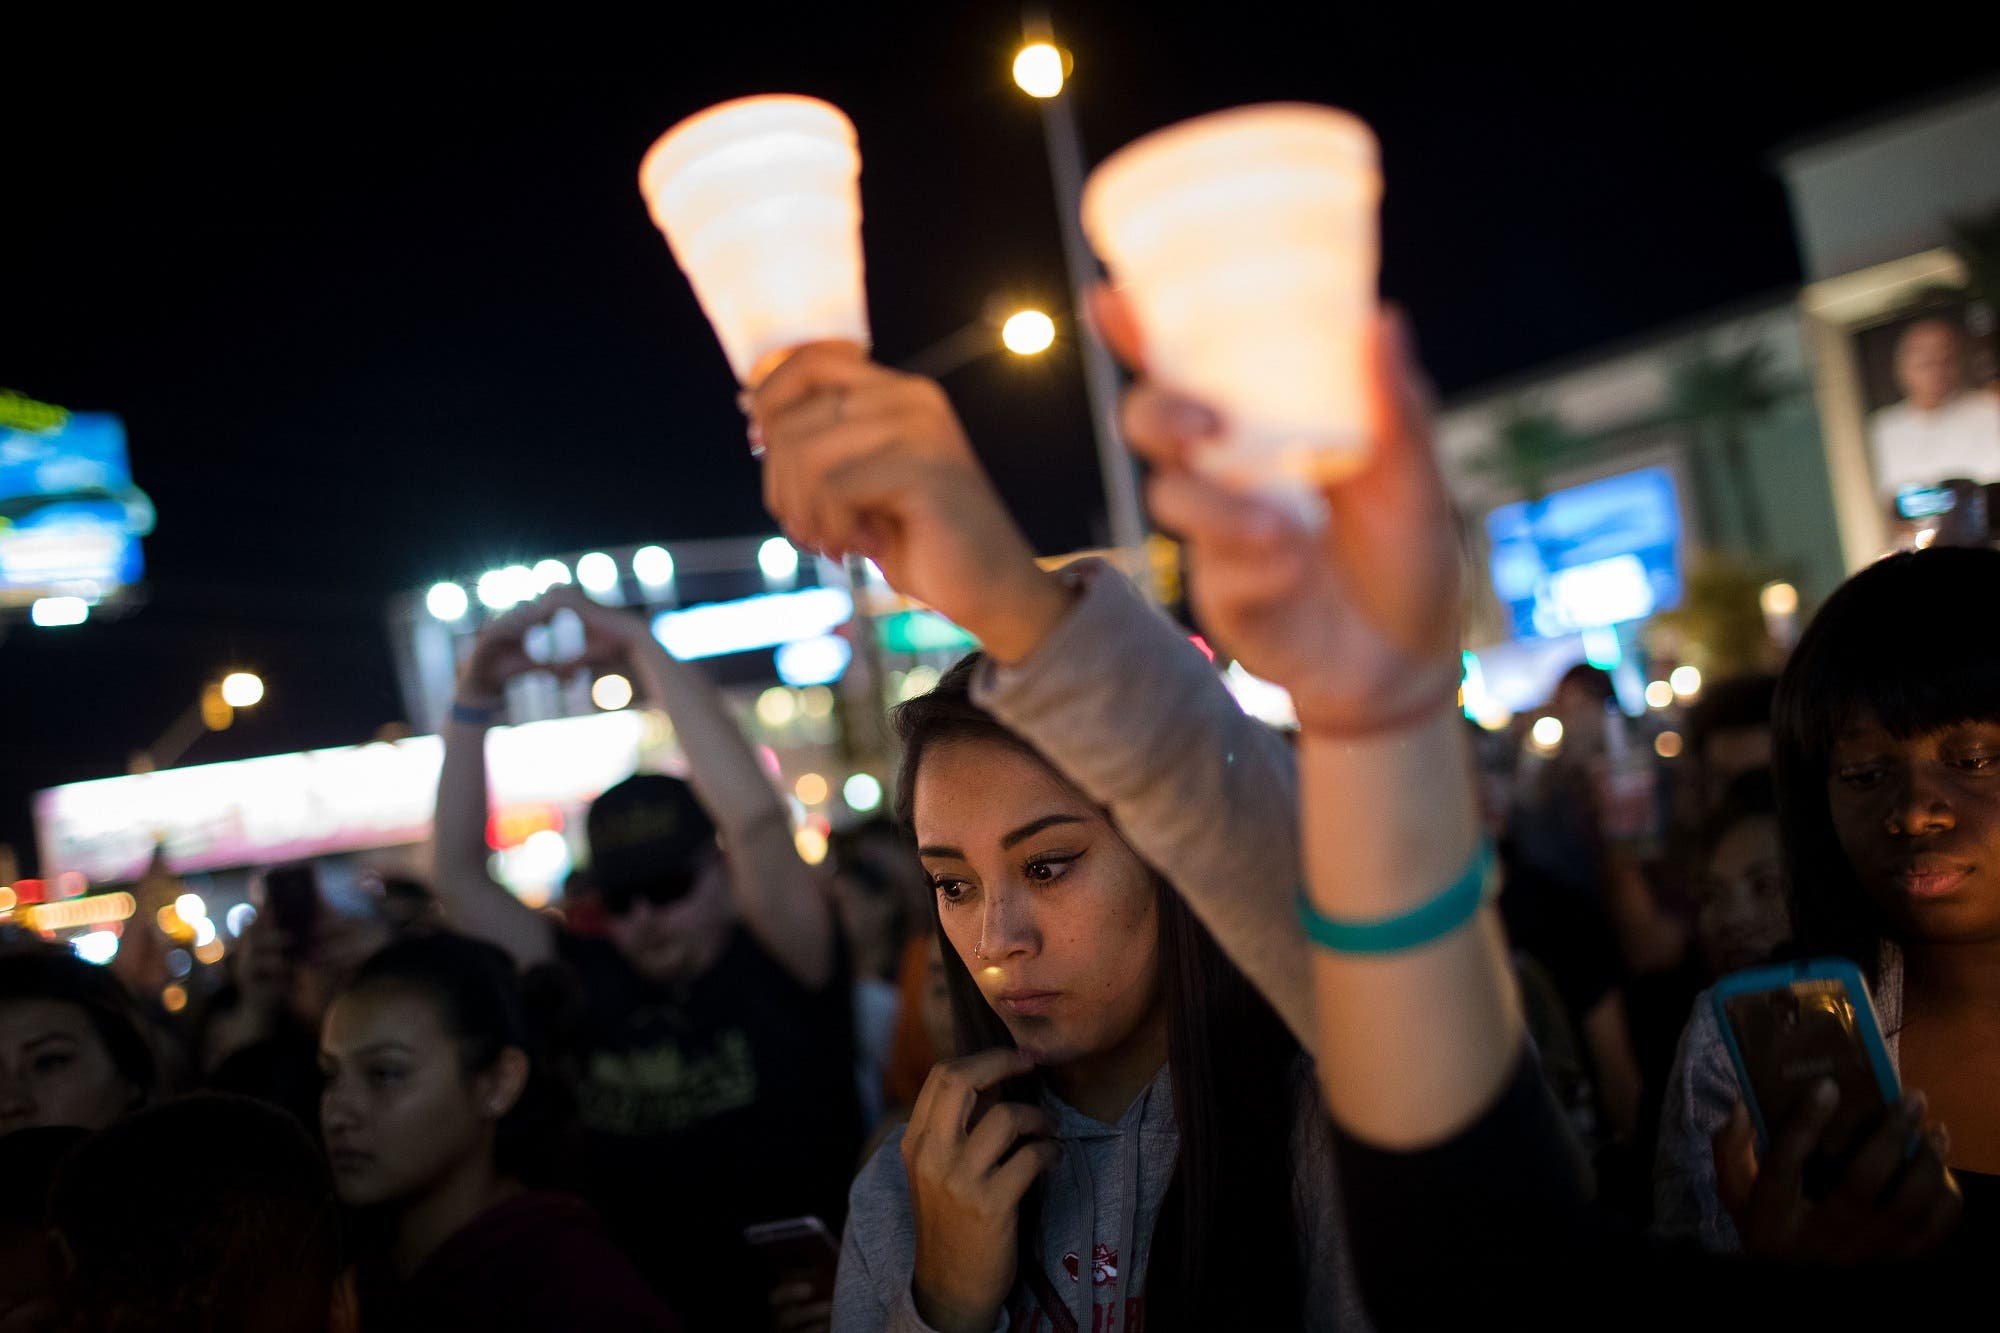 Mourners attend a candlelight vigil at the corner of Sahara Avenue and Las Vegas Boulevard for the victims of Sunday night's mass shooting, on October 2, 2017 in Las Vegas, Nevada. (AFP)